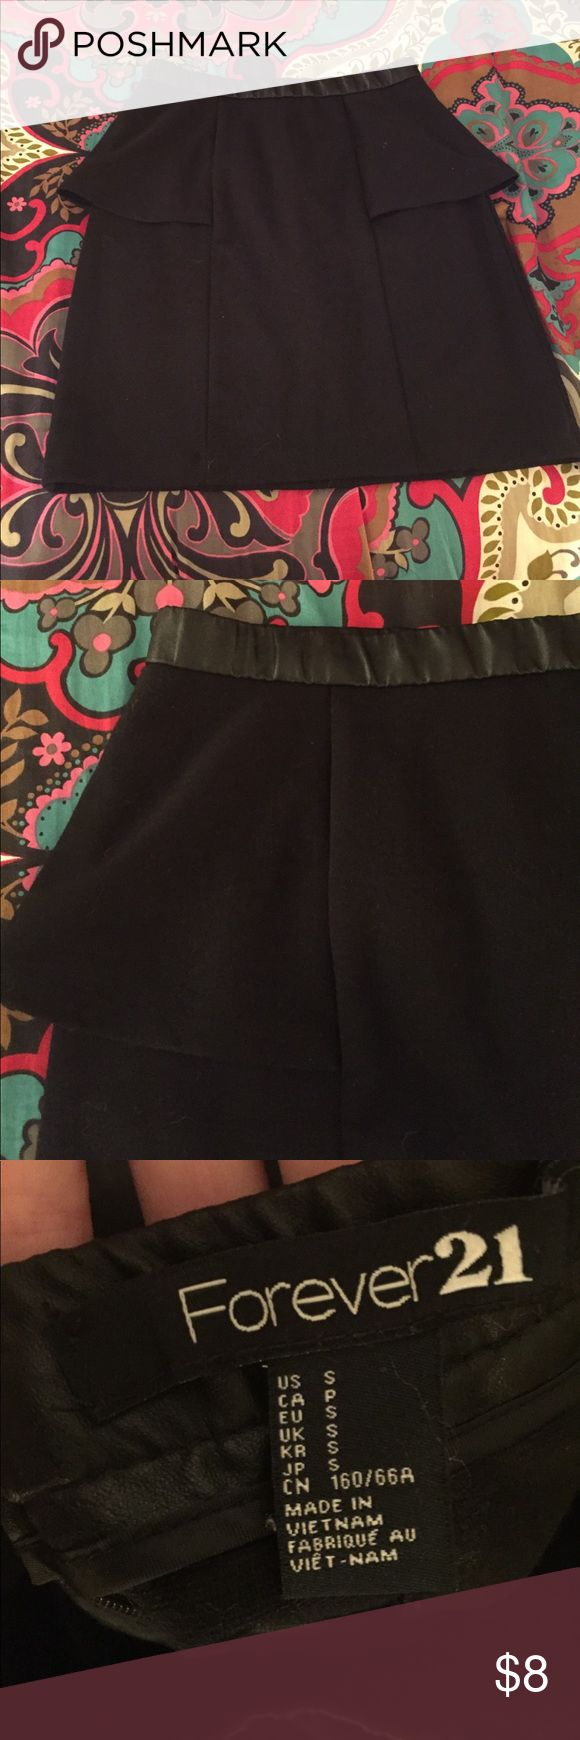 Fitted peplum skirt Fitted black peplum skirt. Leather strip around the waist for a cute detail. Made mostly of polyester, also has rayon and spandex for stretch. Bought and wore once. Forever 21 Skirts Mini